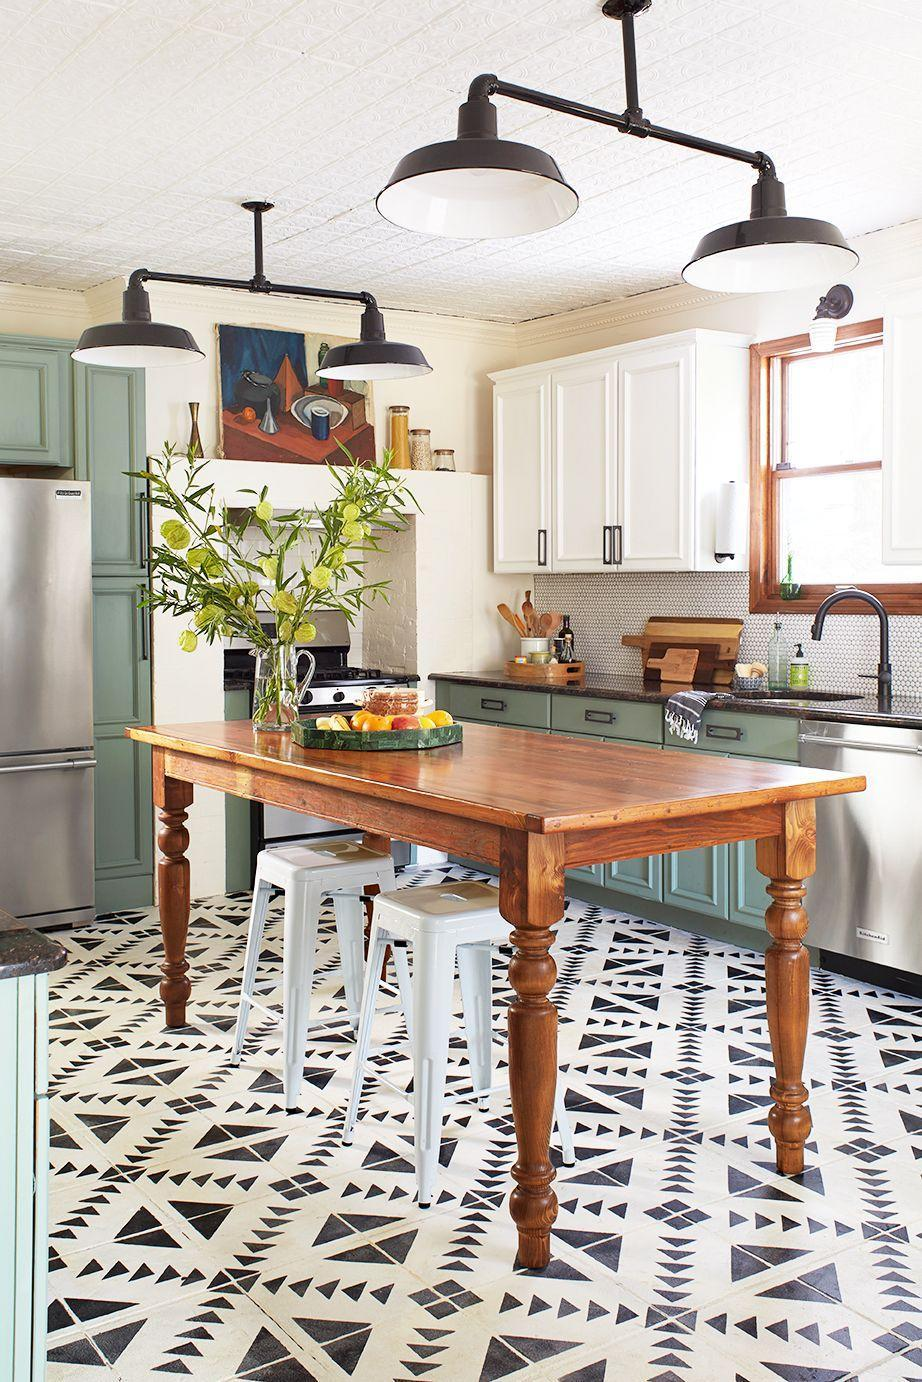 <p>Chalk Paint® on the kitchen cabinets and floors creates a charming look in this contemporary farmhouse kitchen by interior designer Jessica Davis.</p>